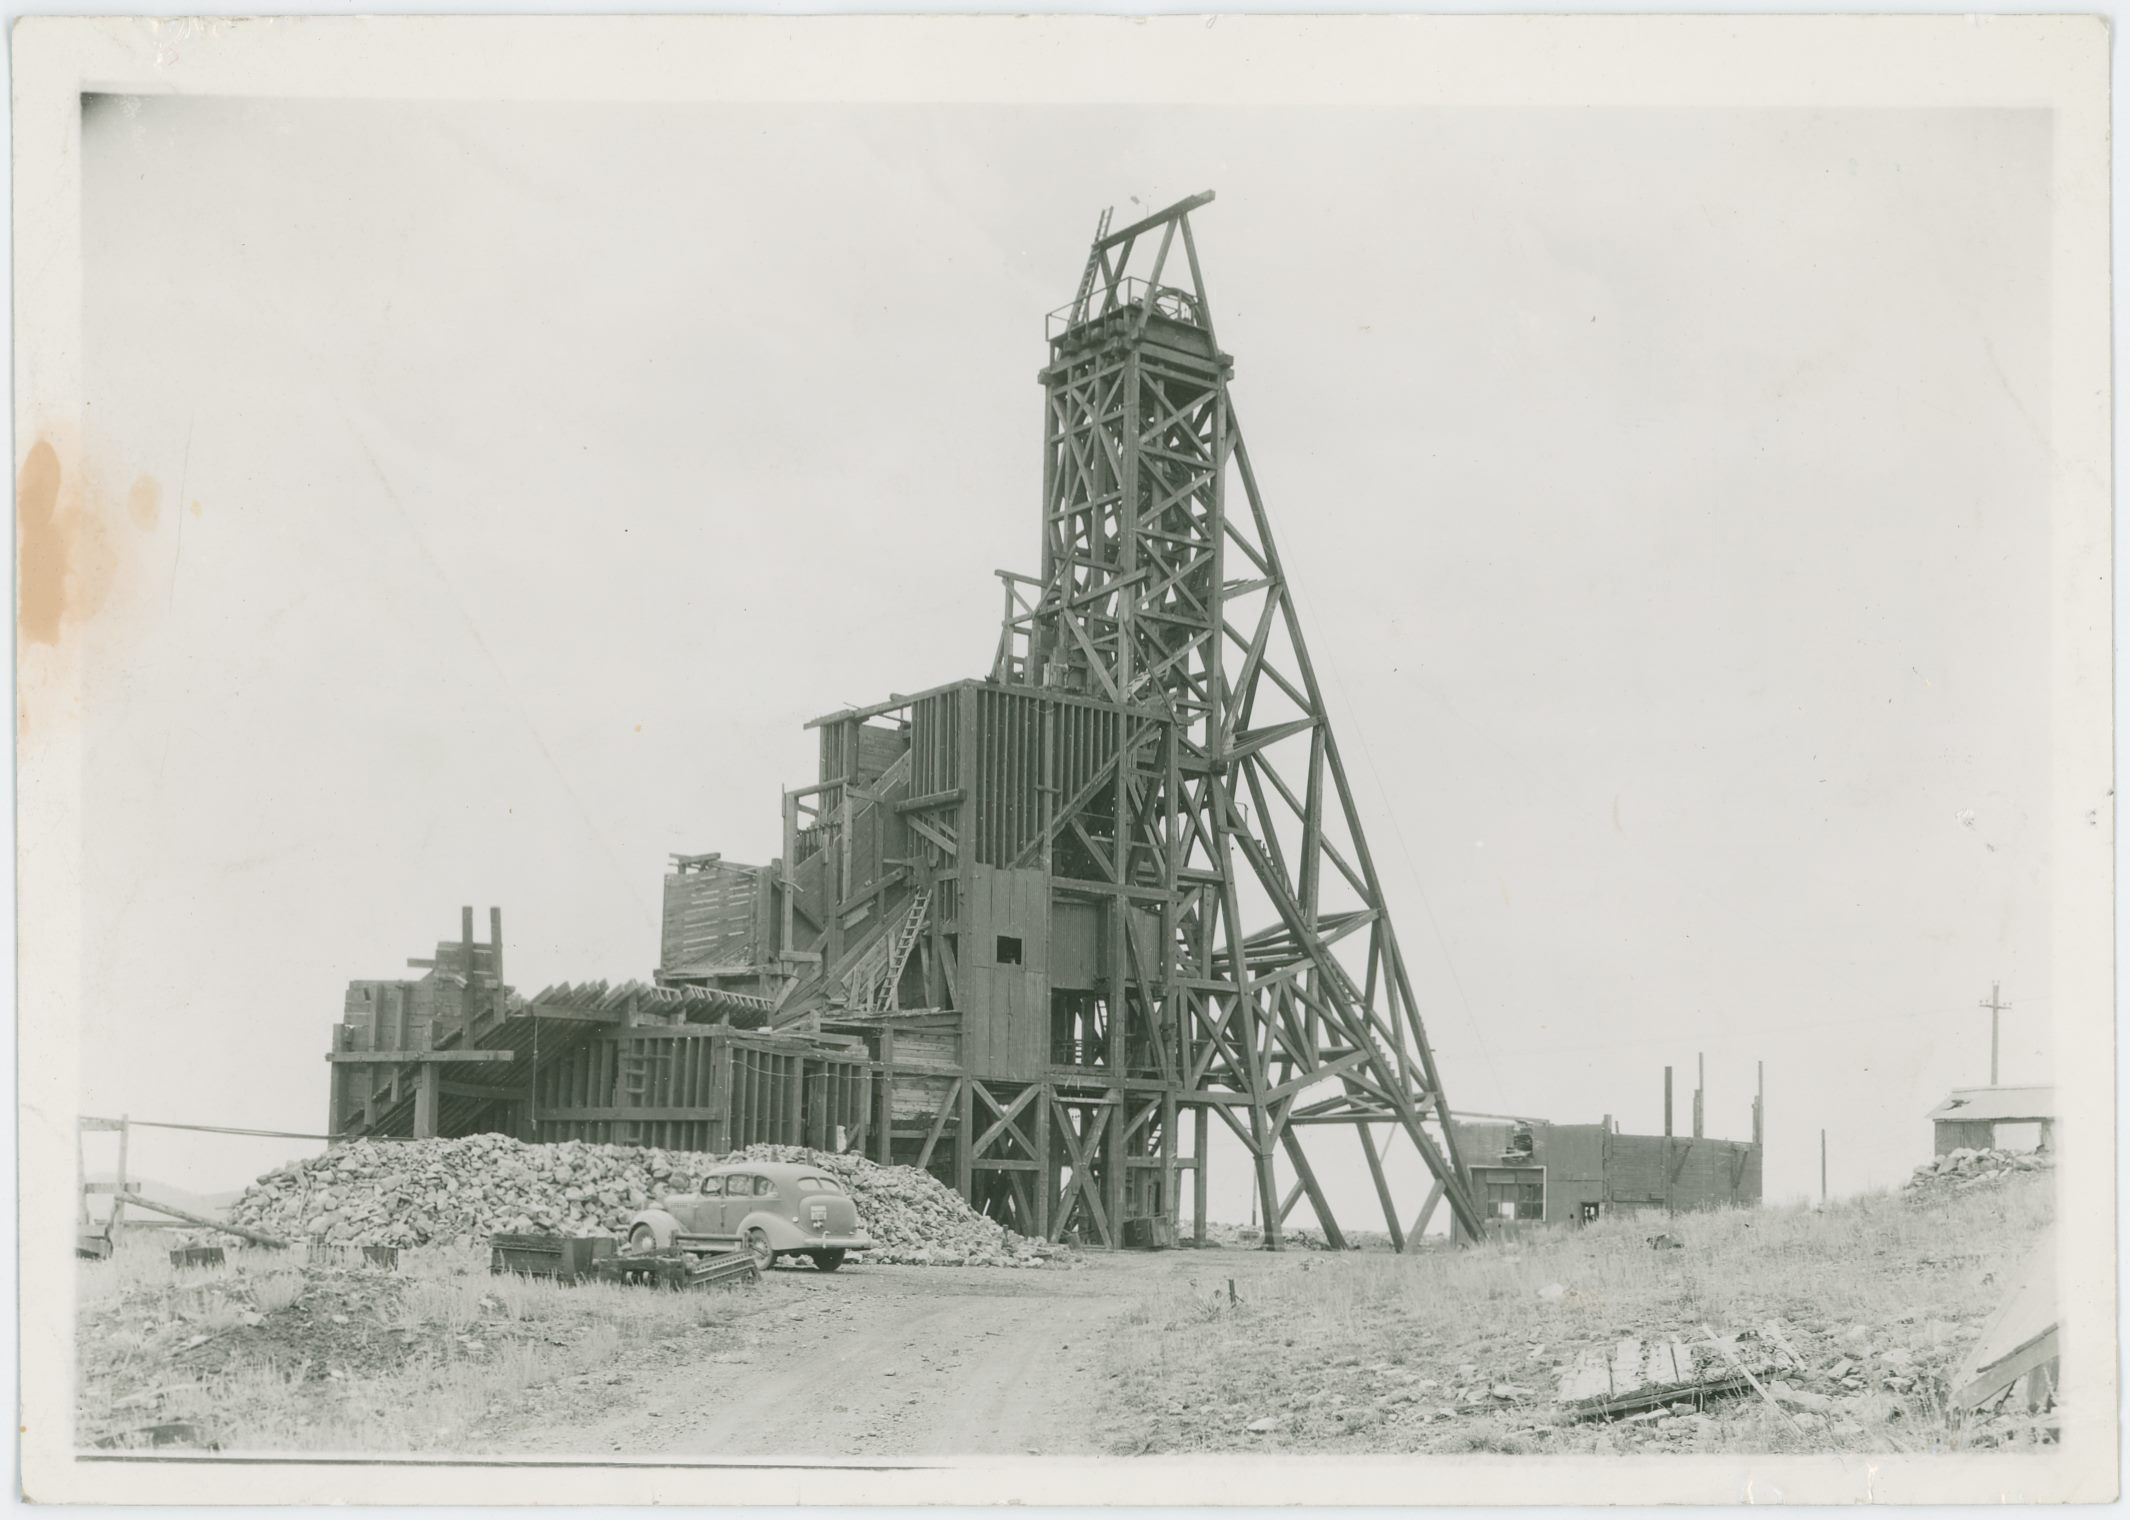 I think this is from around 1940, but I do not know. There is a car parked below this view at the exposed Huge Head-Frame/Gallows-Frame of the old Stratton Independence Mine on Battle Mountain, outskirts of Victor, Colorado, and that seems to have a License-plate of 43-660 but I can't tell what else it might have written above the numbers, so I can't date the image from that either…    The whole structure is quite massive, and all in wood it appears! Hard to imagine all this at one time enclosed in a massive Shaft-house type of structure, as I assume this is as it was built inside the structure back in the days. The left most parts, with the various bins I do think is more recent then the headframe itself, but I dare not say anything as this is beyond my knowledge.